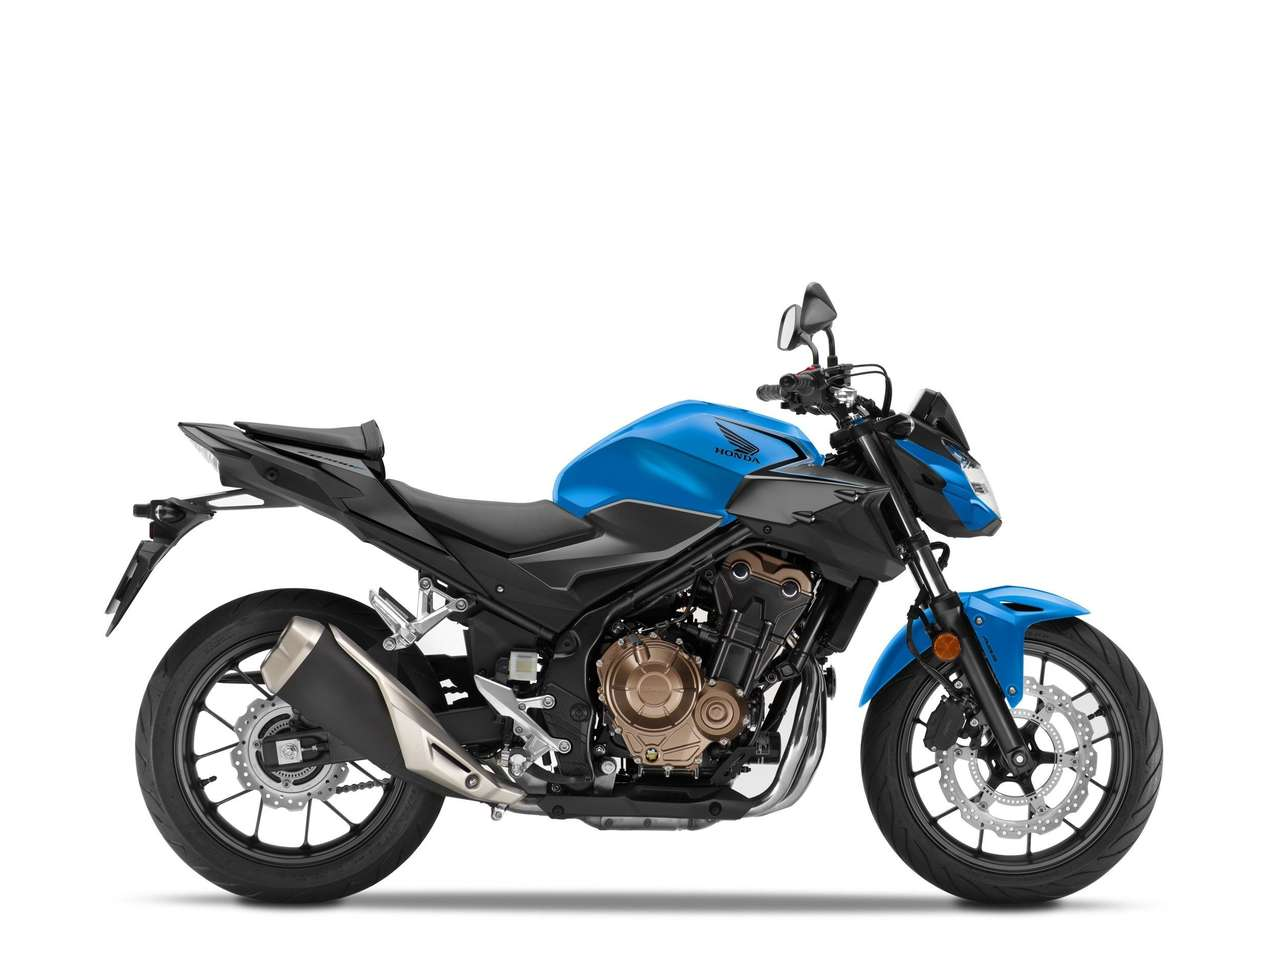 Honda CB500F 2021 - Candy Caribbean Blue Sea